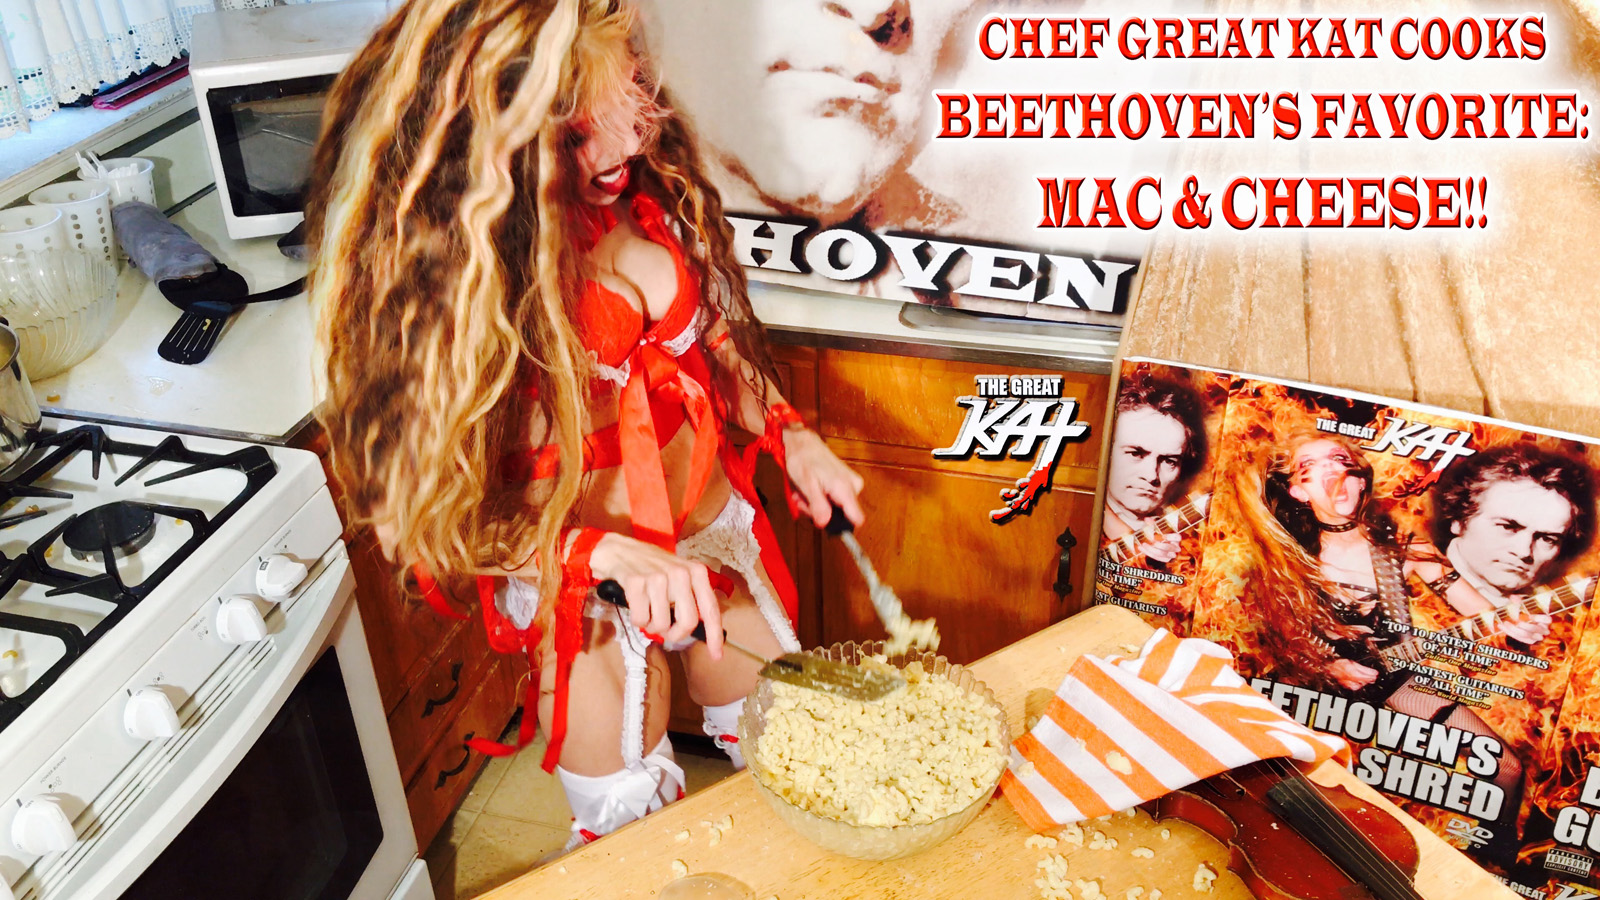 CHEF GREAT KAT COOKS BEETHOVEN'S FAVORITE: MAC & CHEESE!!